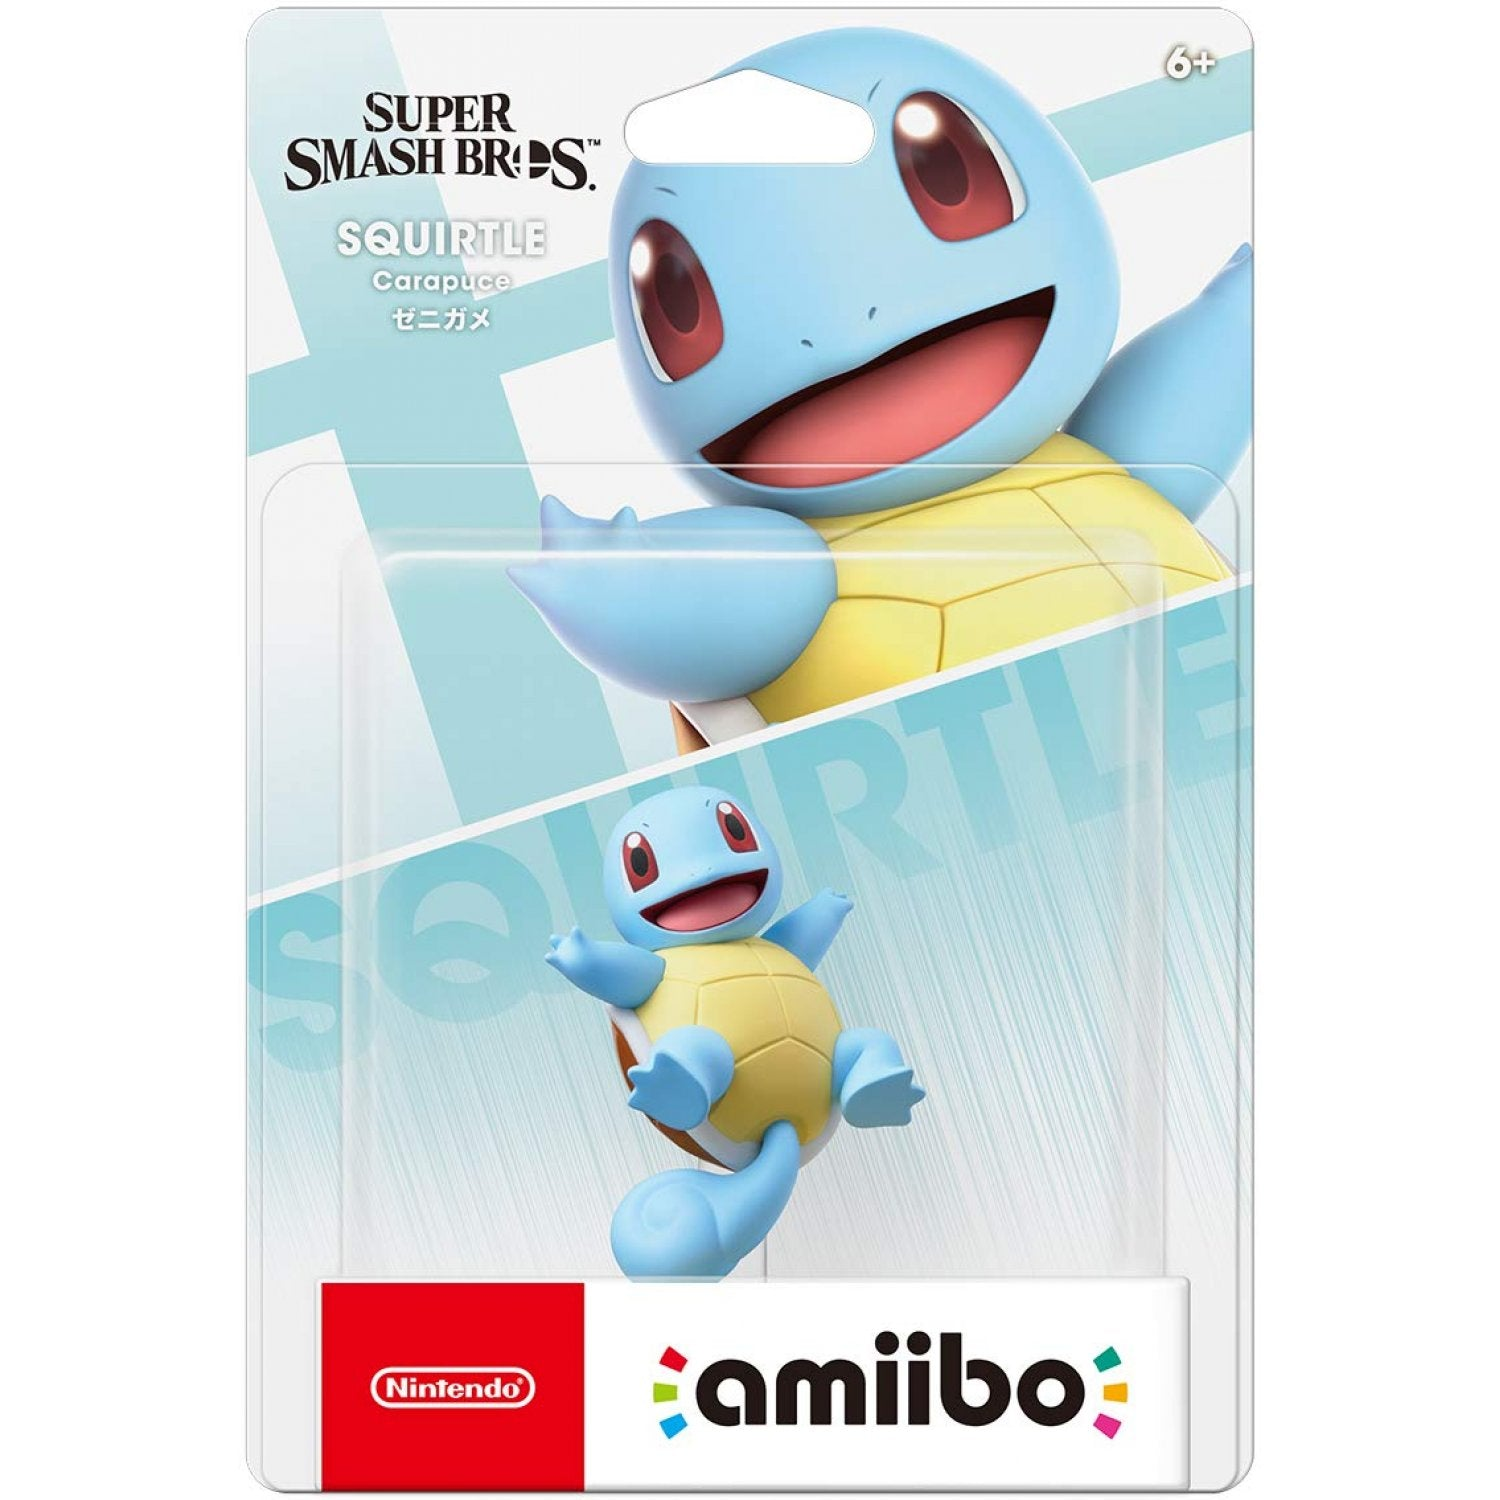 Amiibo Super Smash Bros Series Figure (Squirtle / Zenigame)